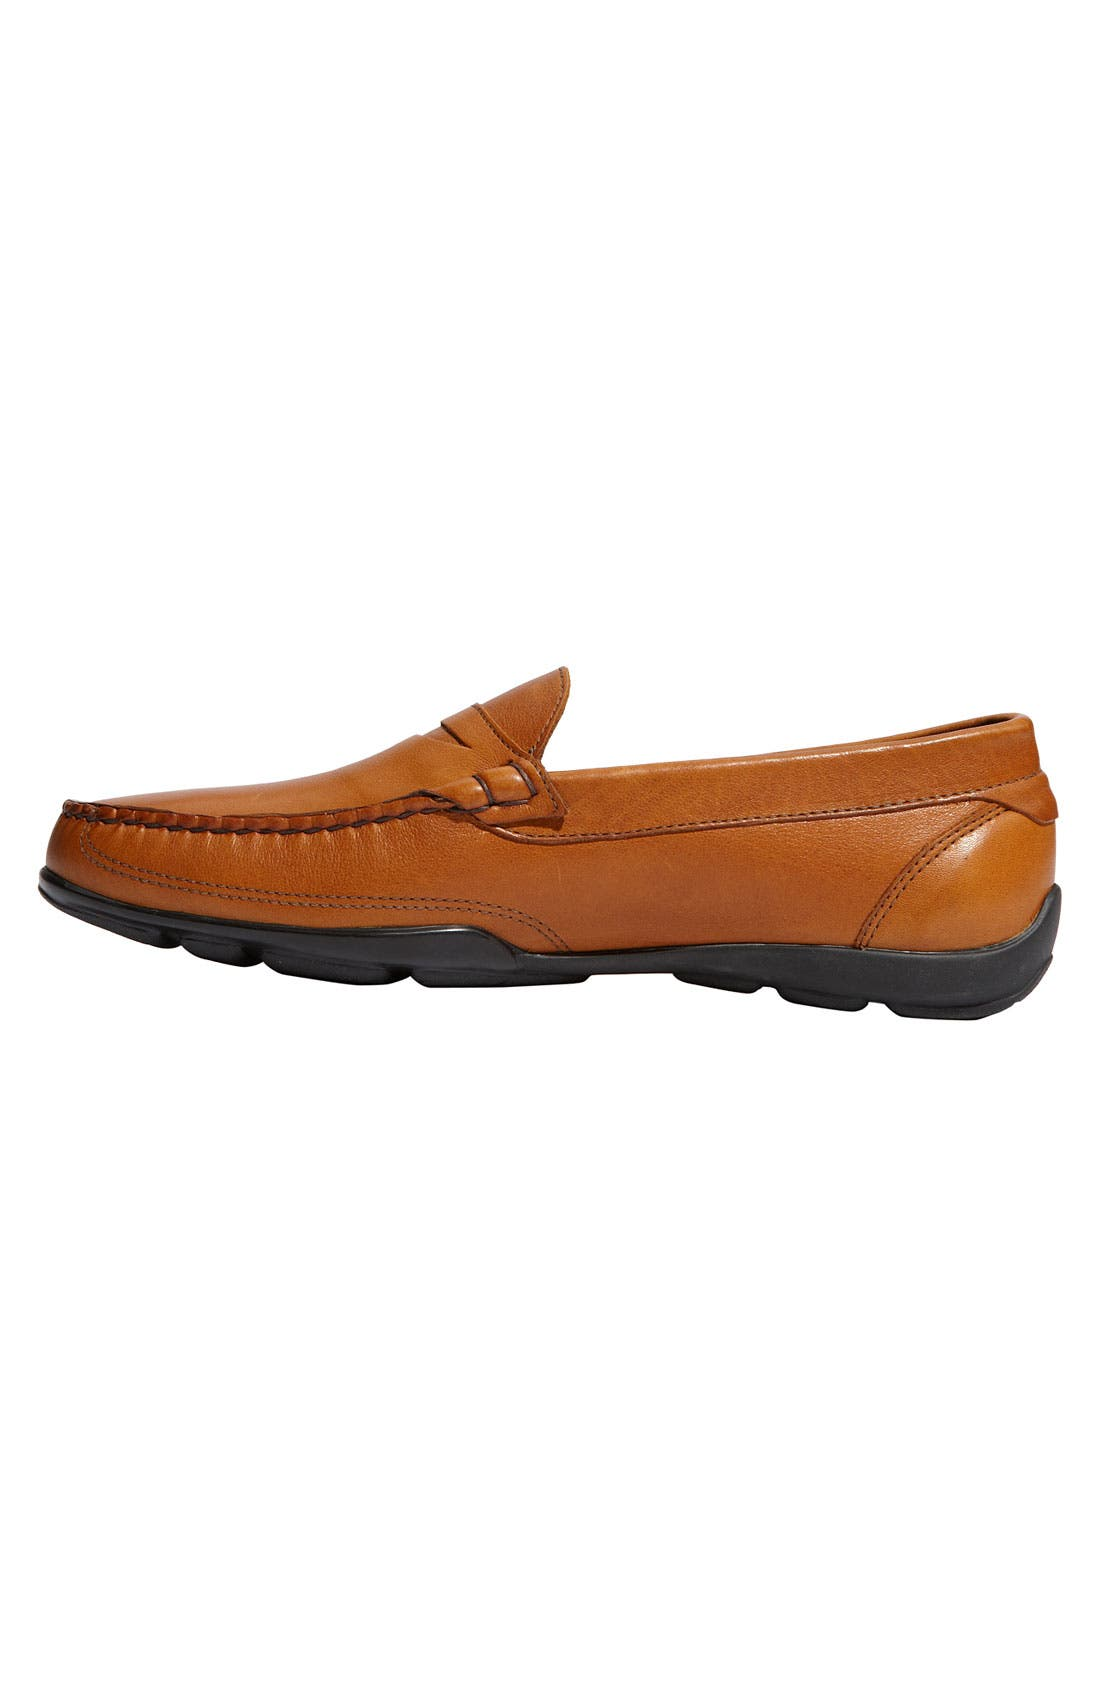 Alternate Image 2  - ALLEN EDMONDS ROUTE 100 PENNY LOAFER